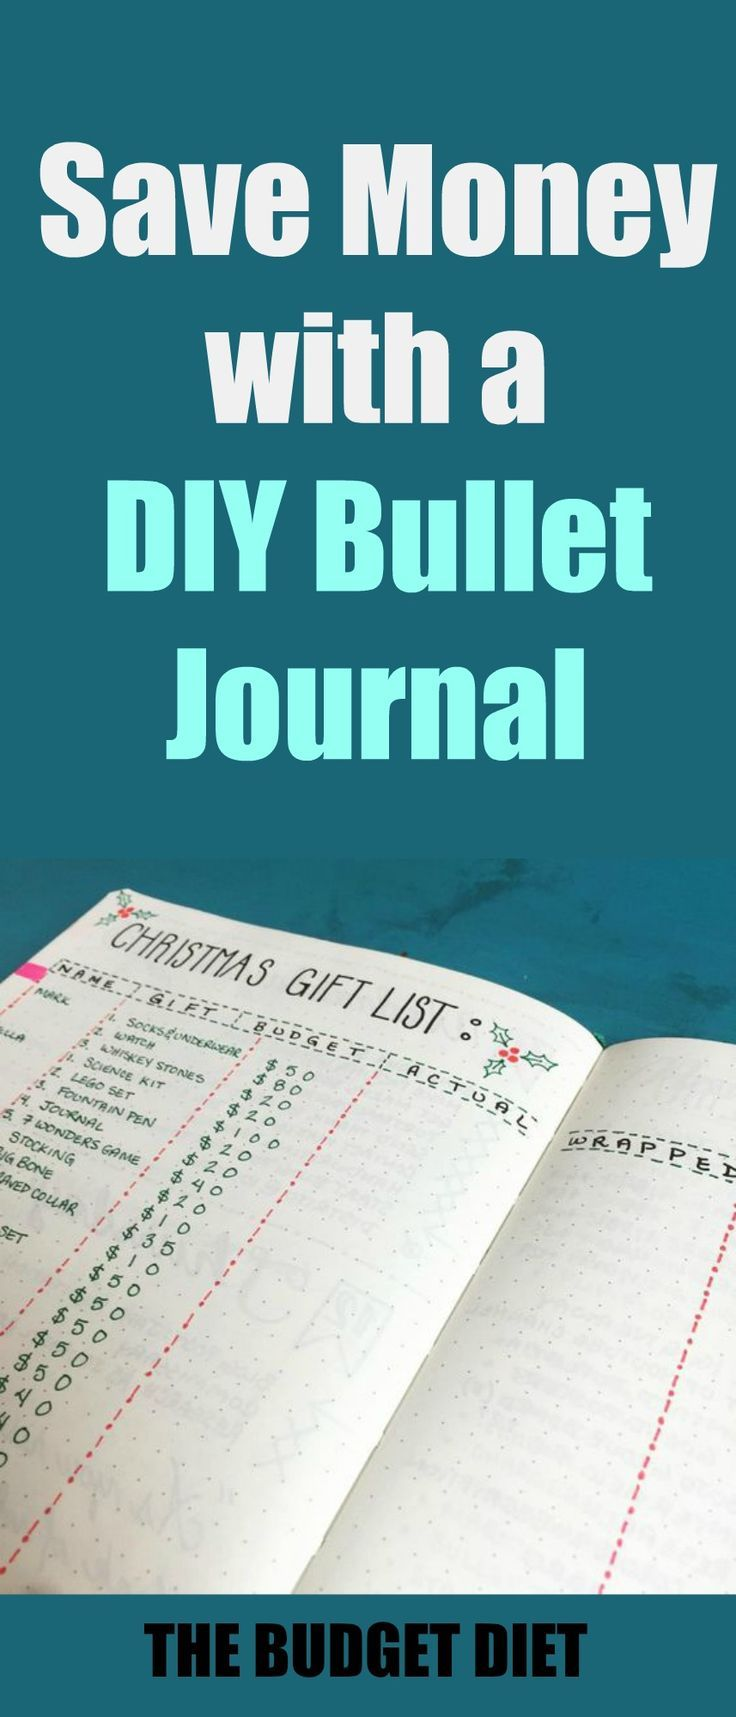 7 ways to save money with a diy bullet journal bullets money and ways to save. Black Bedroom Furniture Sets. Home Design Ideas